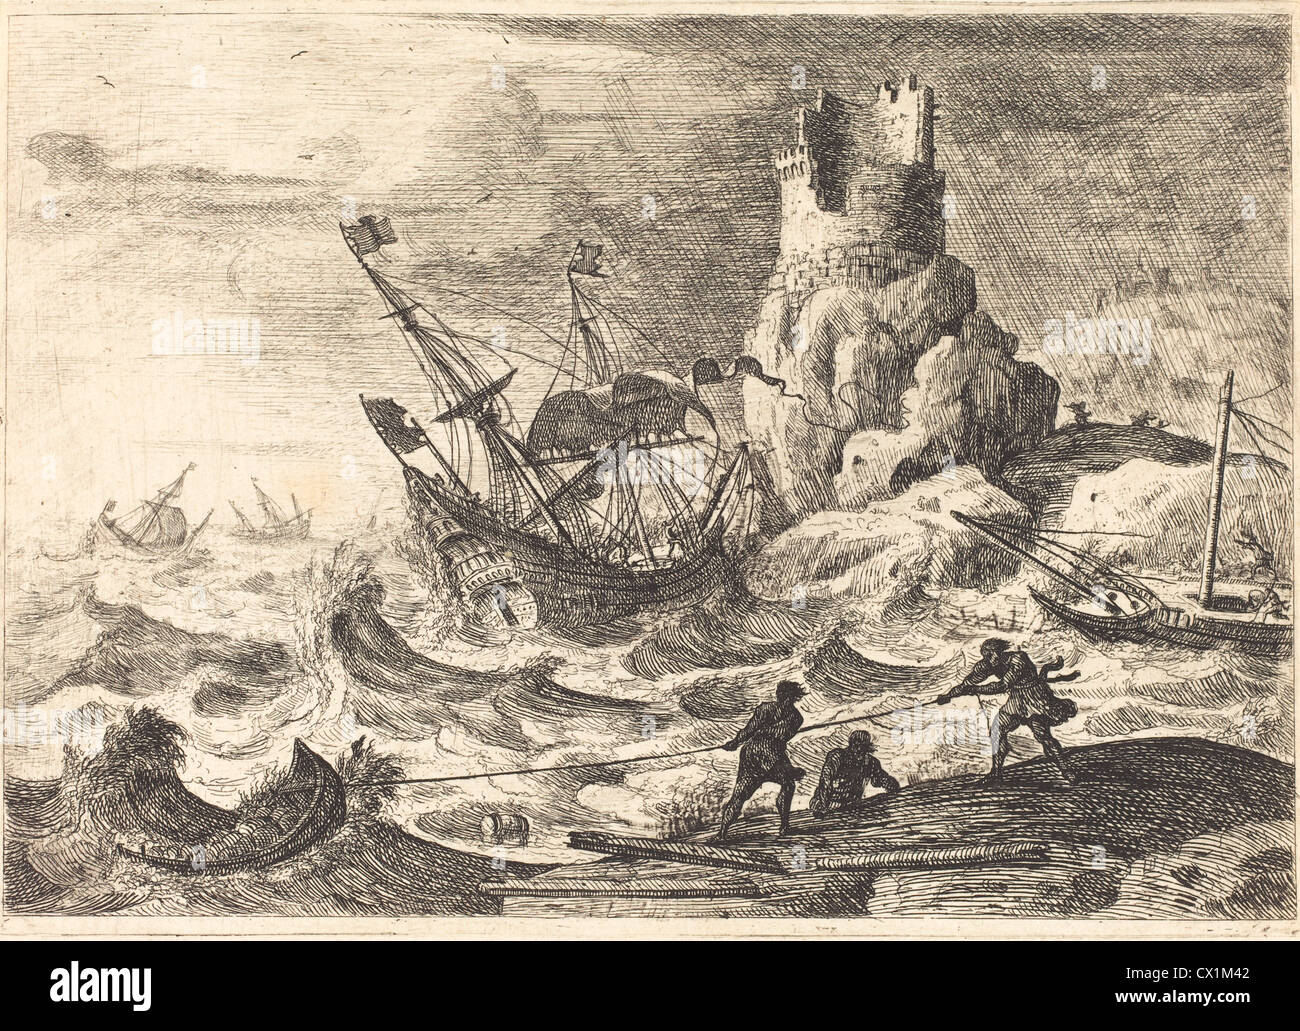 Claude Lorrain (French, 1604/1605 - 1682 ), The Shipwreck (Le naufrage), c. 1638/1641, etching Stock Photo